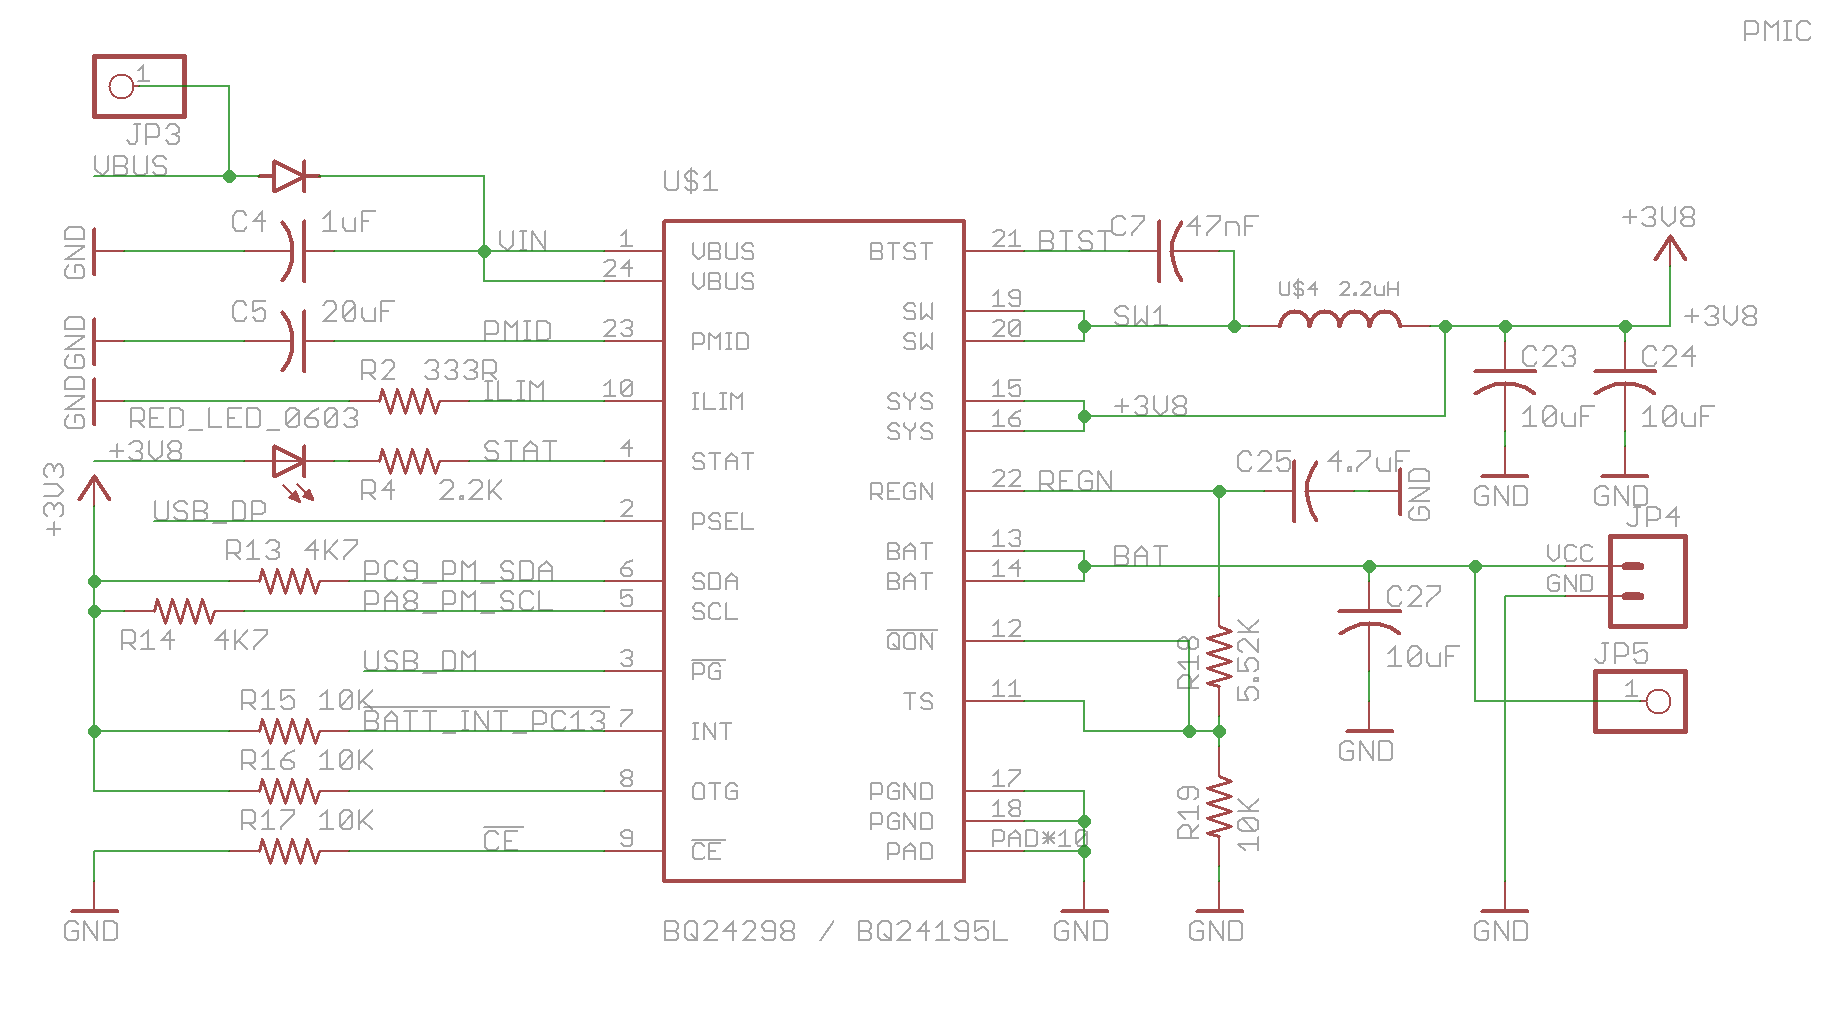 Particle Datasheets Electron Datasheet 4 Pin Power Connector Wiring Diagram The Uses Tis Bq24195 As Management And Charging Unit This Pmic Intelligently Sources From Either Vin Usb Port Or